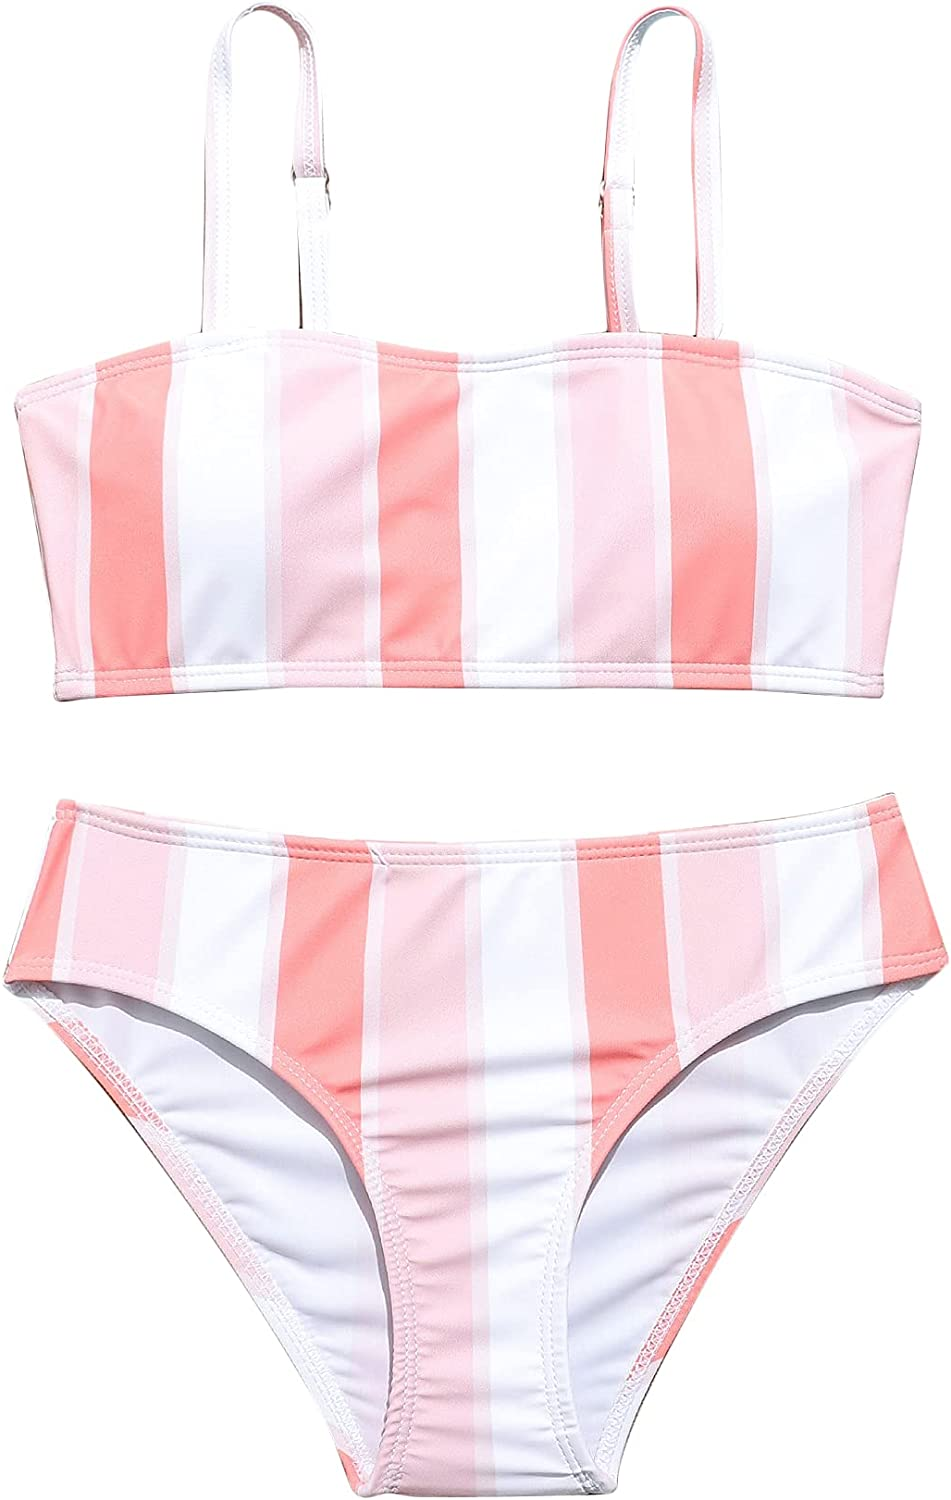 SOLY HUX Girl's Spaghetti Strap Bikini Bathing Suit Two Piece Swimsuits Striped Pink White 150